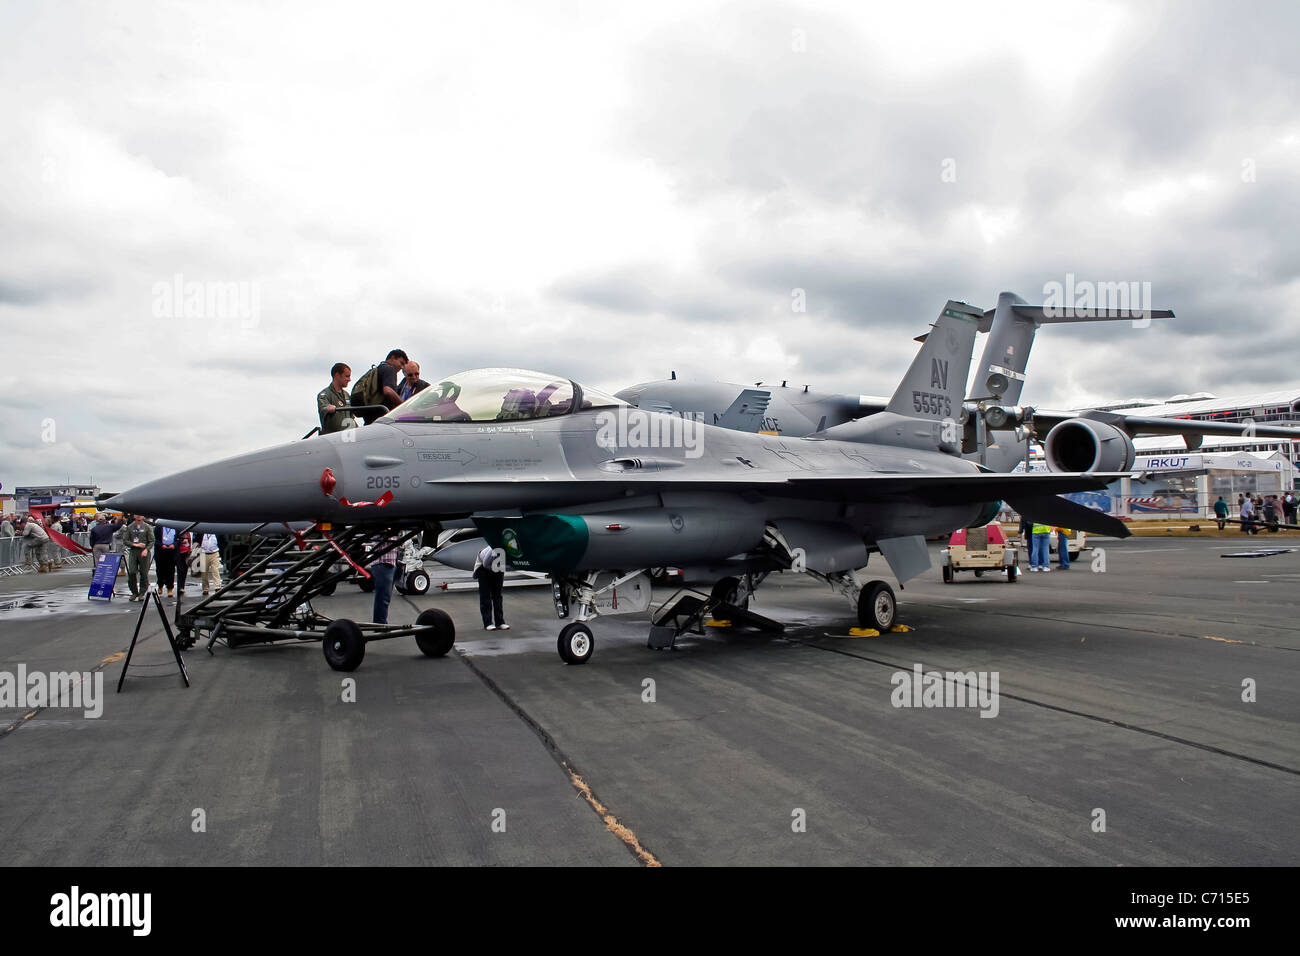 USAF United states airforce at Farnborough Trade Show - Stock Image